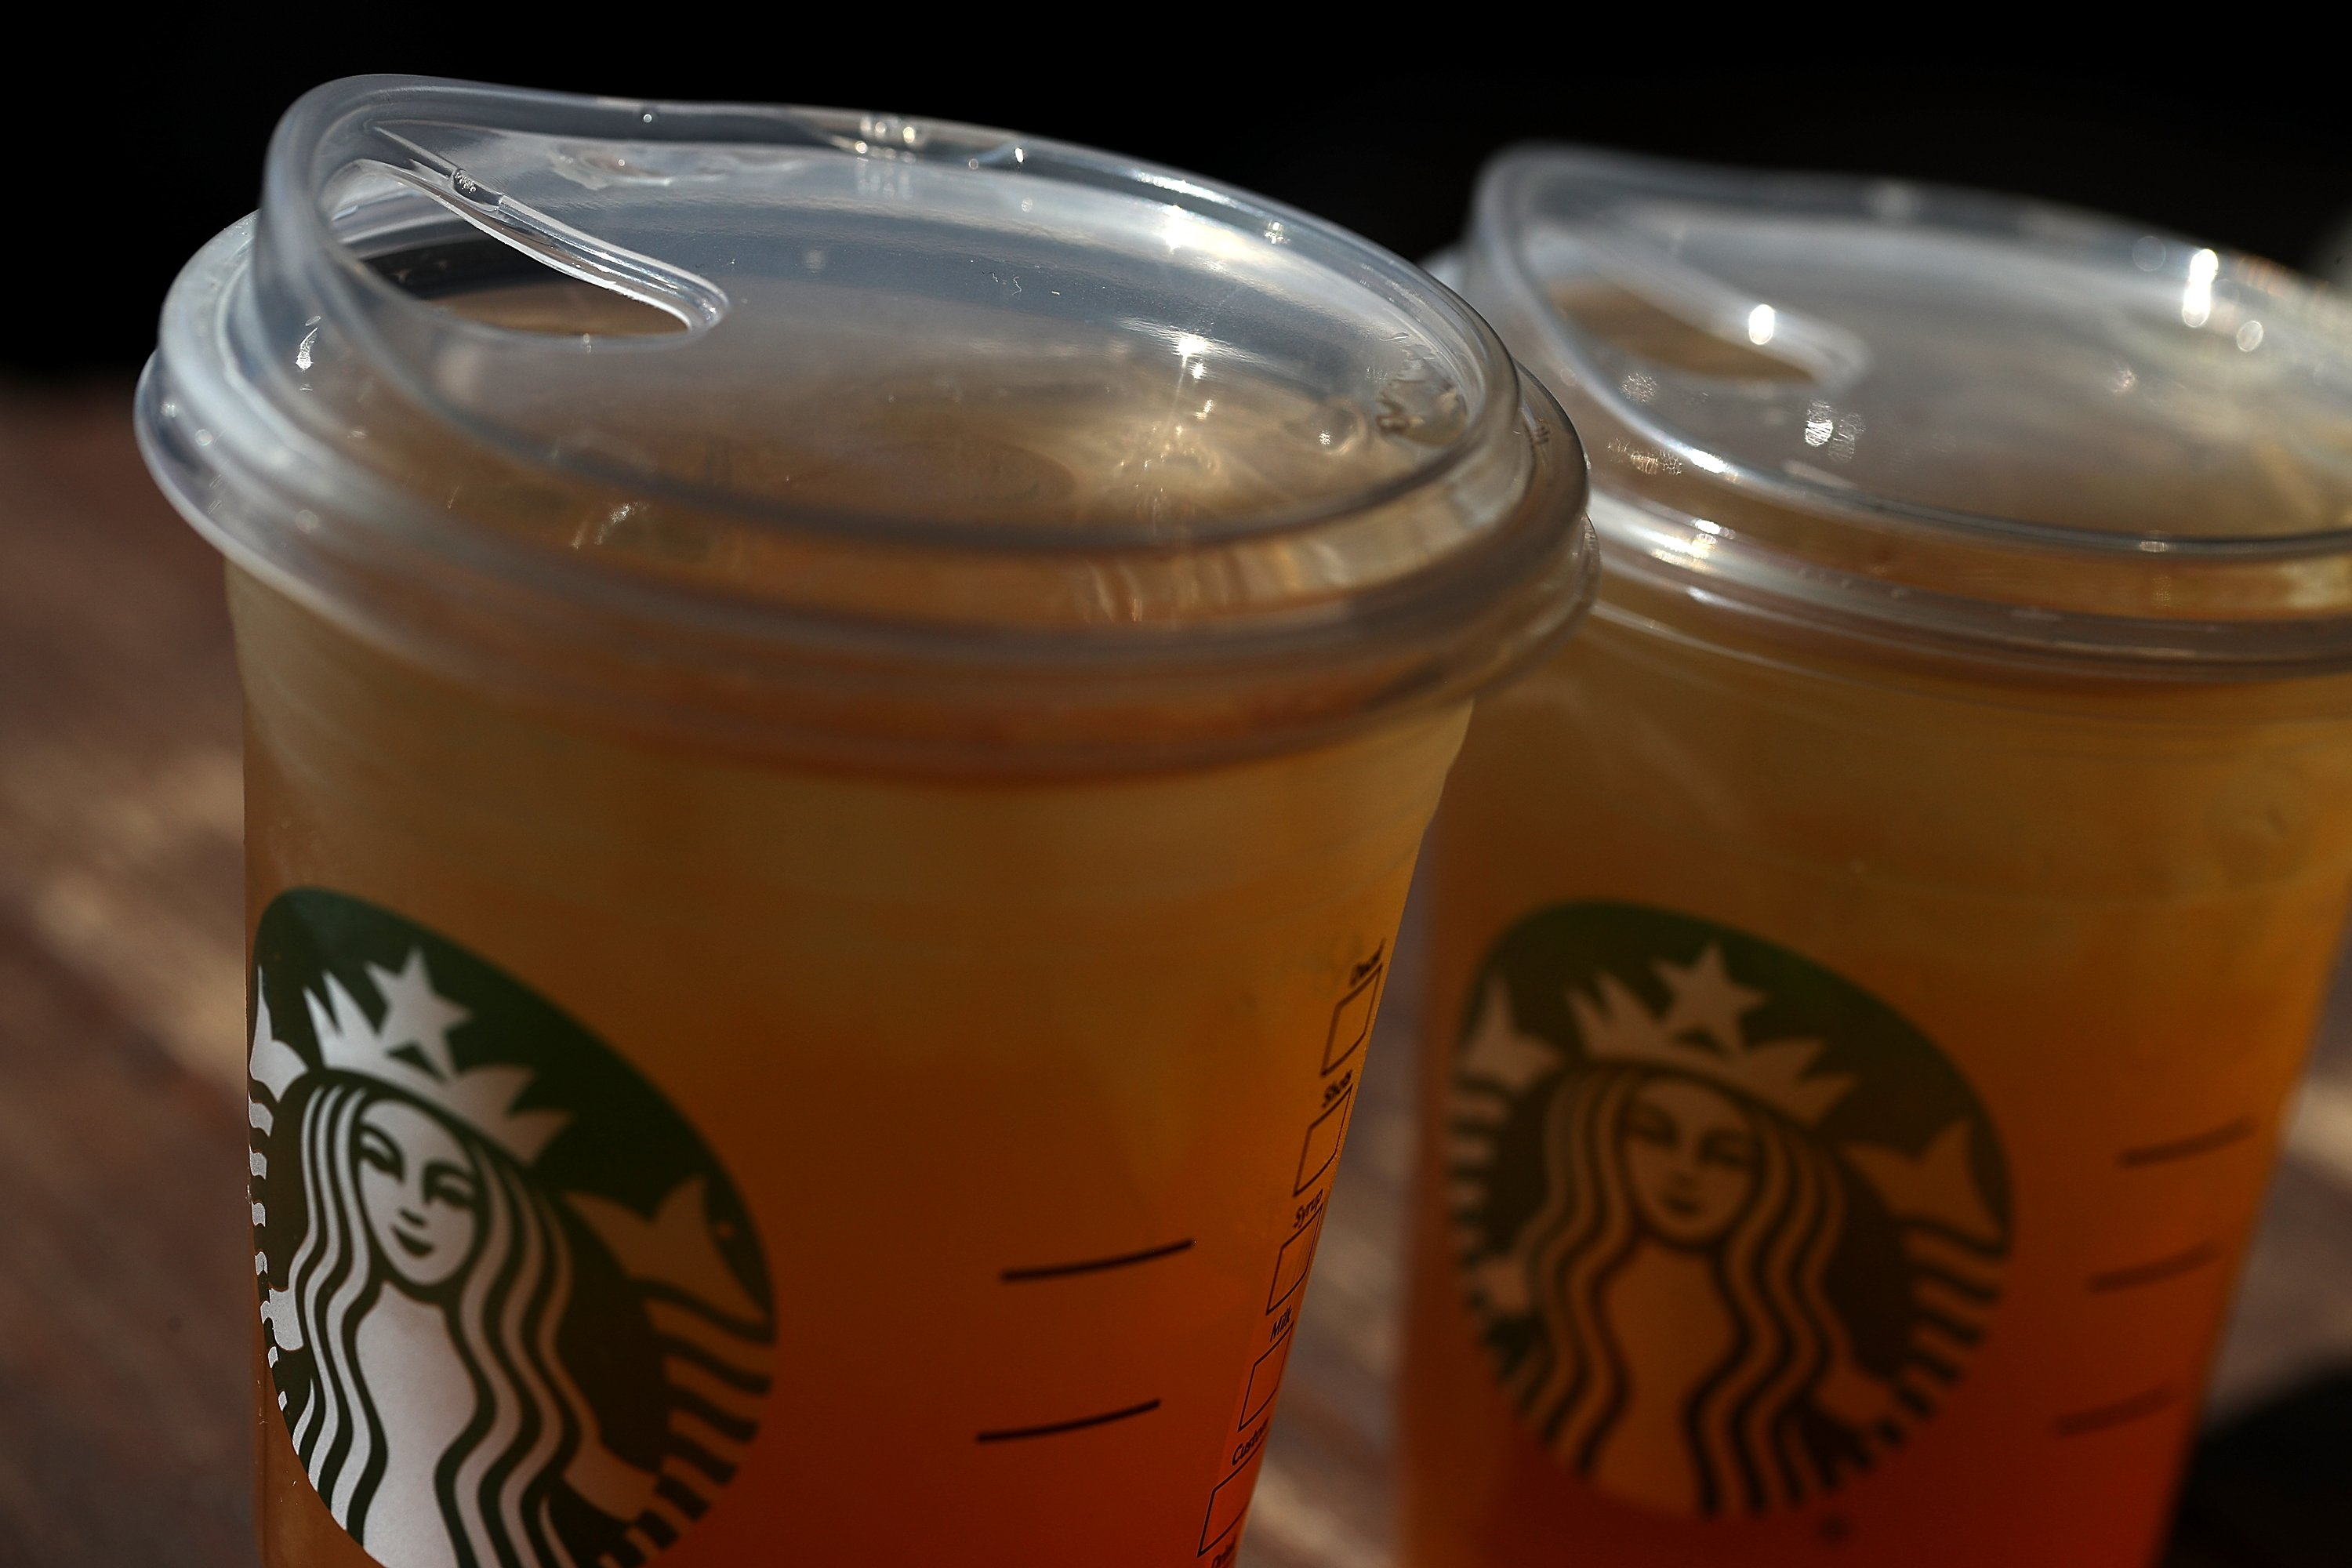 A new flat plastic lid that does not need a straw is shown on a cup of Starbucks iced tea on July 9, 2018 in Sausalito, California. Starbucks announced today that it plans on phasing out all plastic straws from its 28,000 stores worldwide by 2020. Some of its drinnk cups will be fitted with special flat plastic lids that can be used without straws. (Photo by Justin Sullivan/Getty Images)